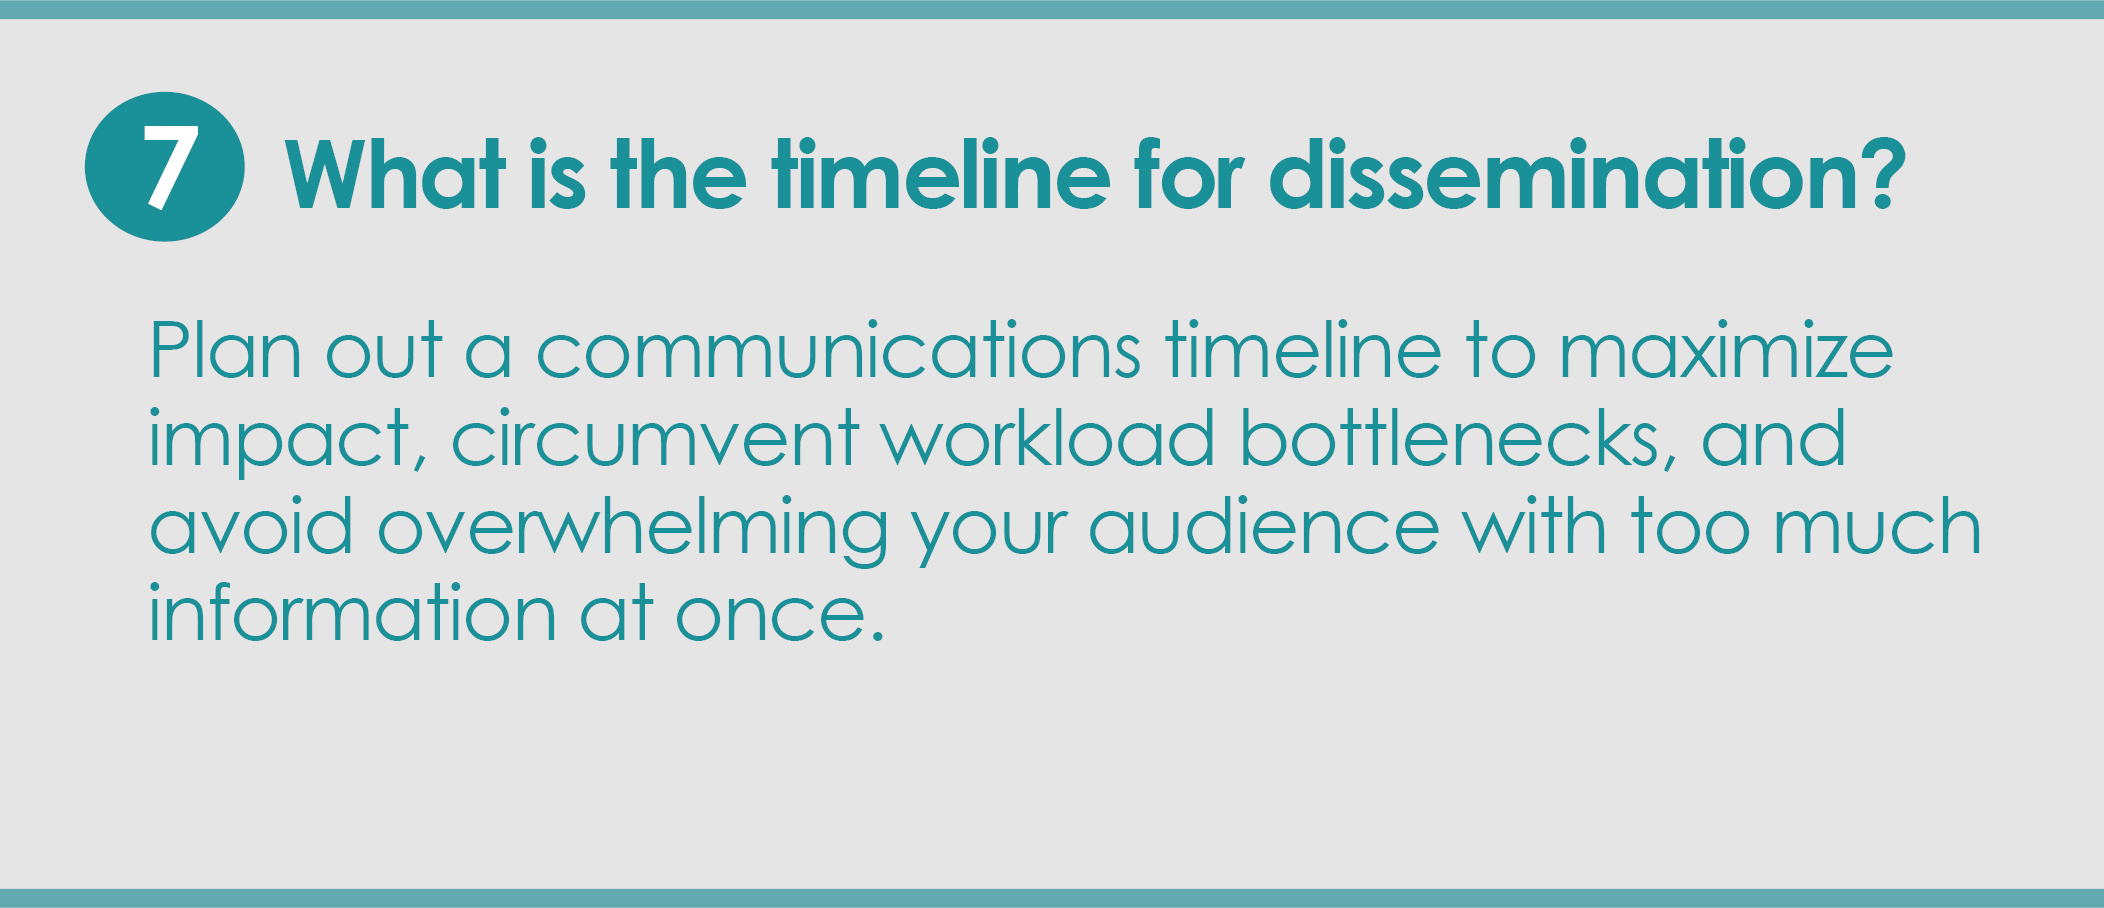 Step 7: What is the timeline for dissemination? Plan out a communications timeline to maximize impact, circumvent workload bottlenecks, and avoid overwhelming your audience with too much information at once.